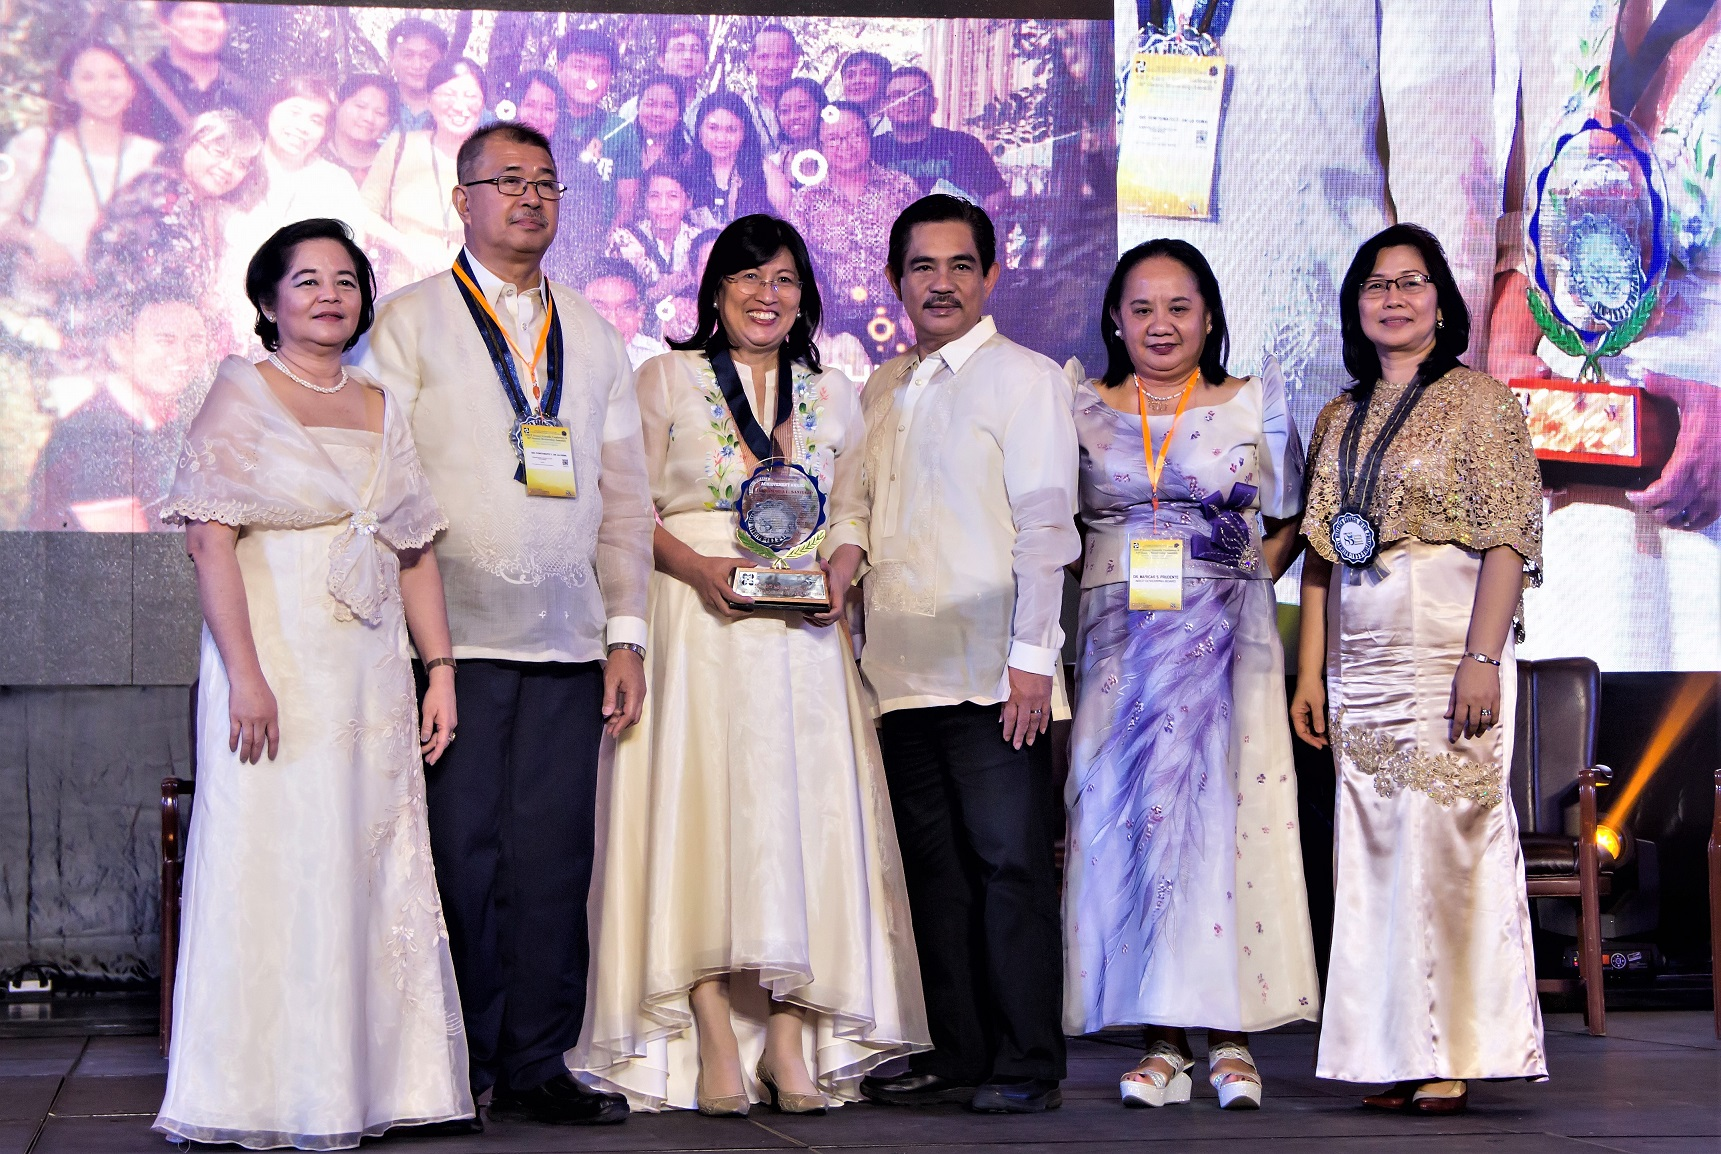 Professor Andrea Santiago and Professor Fernando Roxas (third and fourth from left) at NRCP 85th General Membership Assembly and Annual Scientific Conference.